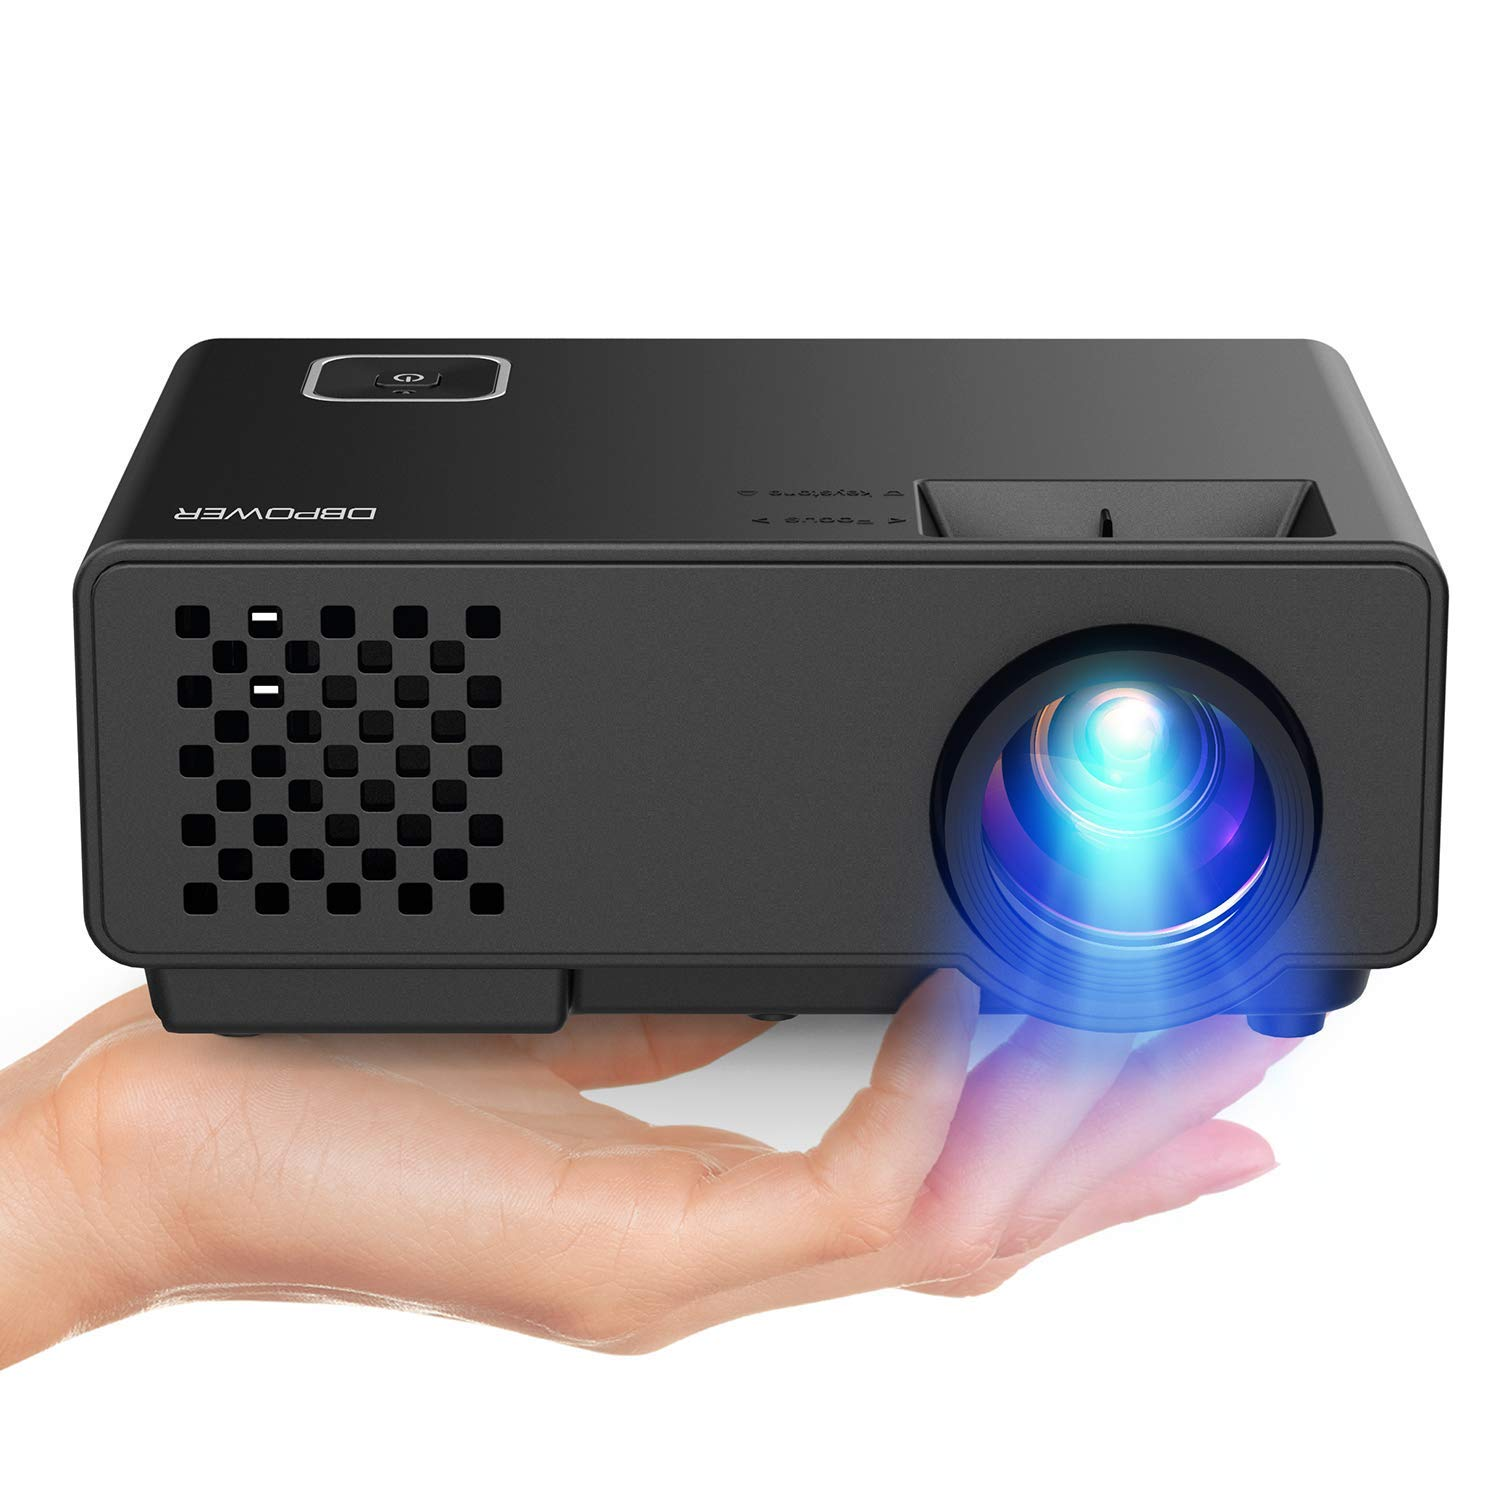 Video Projector -DBPOWER RD810 Portable Mini Projector, 176'' Display, 1080P Supported 50,000 Hrs Home Movie Projector , Compatible with HDMI VGA AV USB by DBPOWER (Image #1)